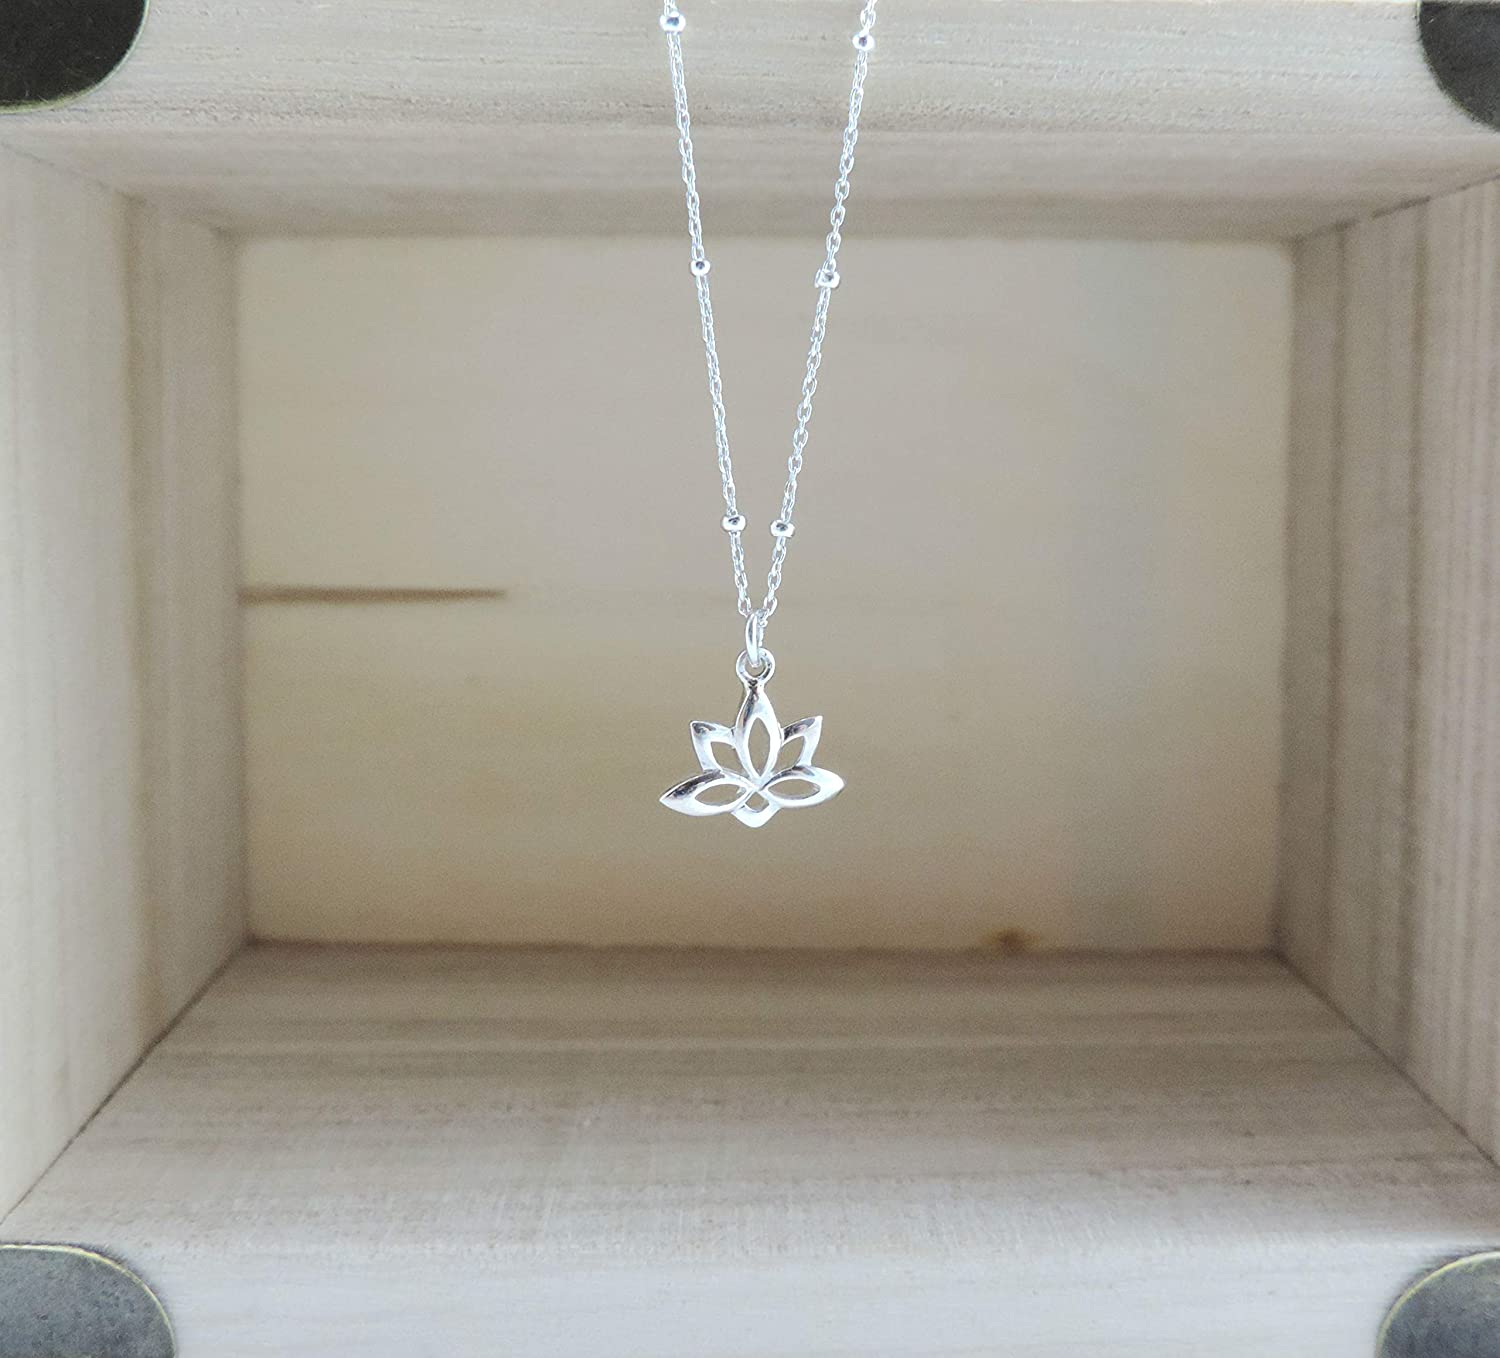 Sister Gift Flower Girl Gift for Daughter Yoga Necklace Dainty Lotus Charm Necklace Sterling Silver Lotus Necklace Minimalist Jewelry